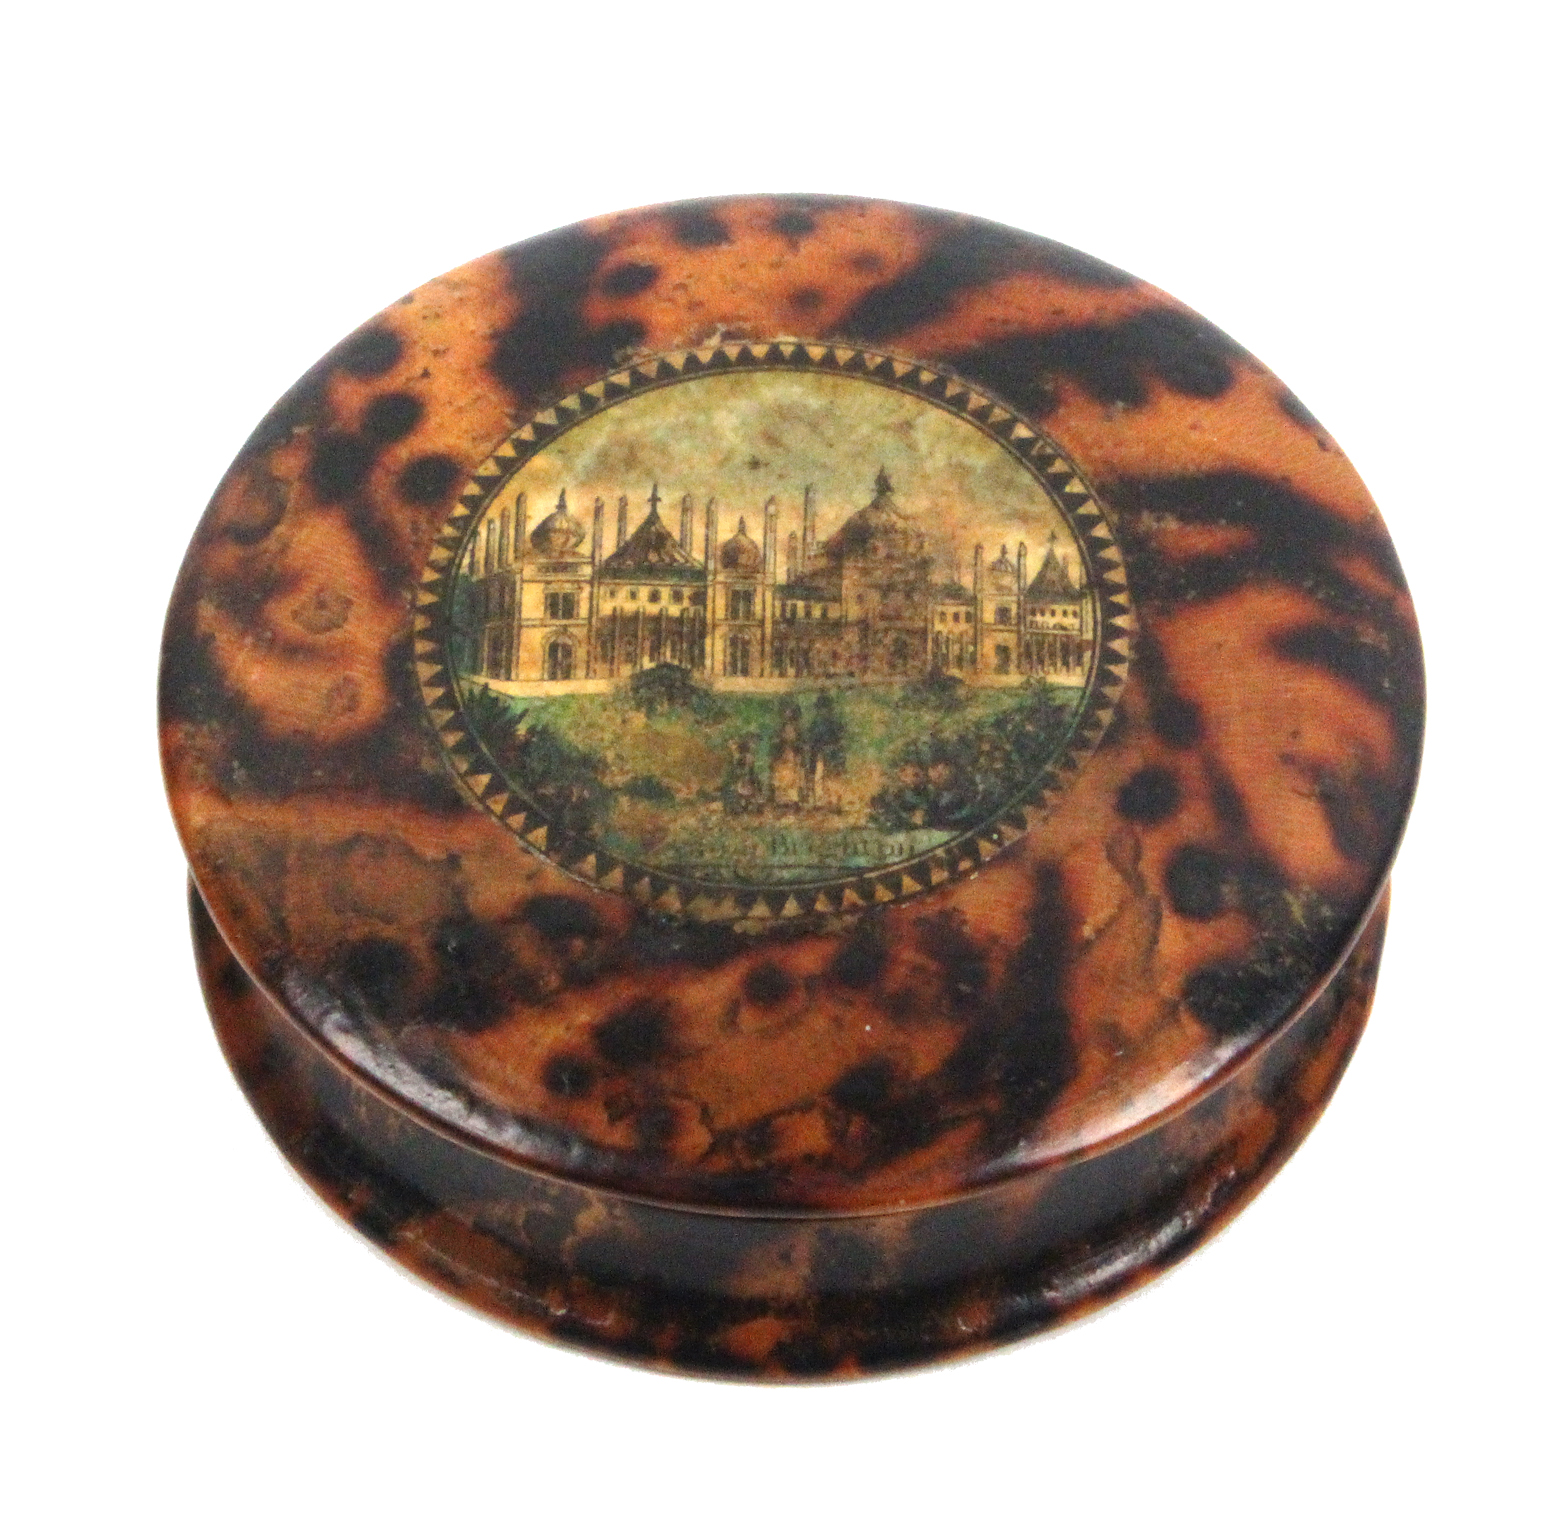 Lot 37 - An early Tunbridge ware circular box in simulated tortoiseshell, the domed lid with a colour print